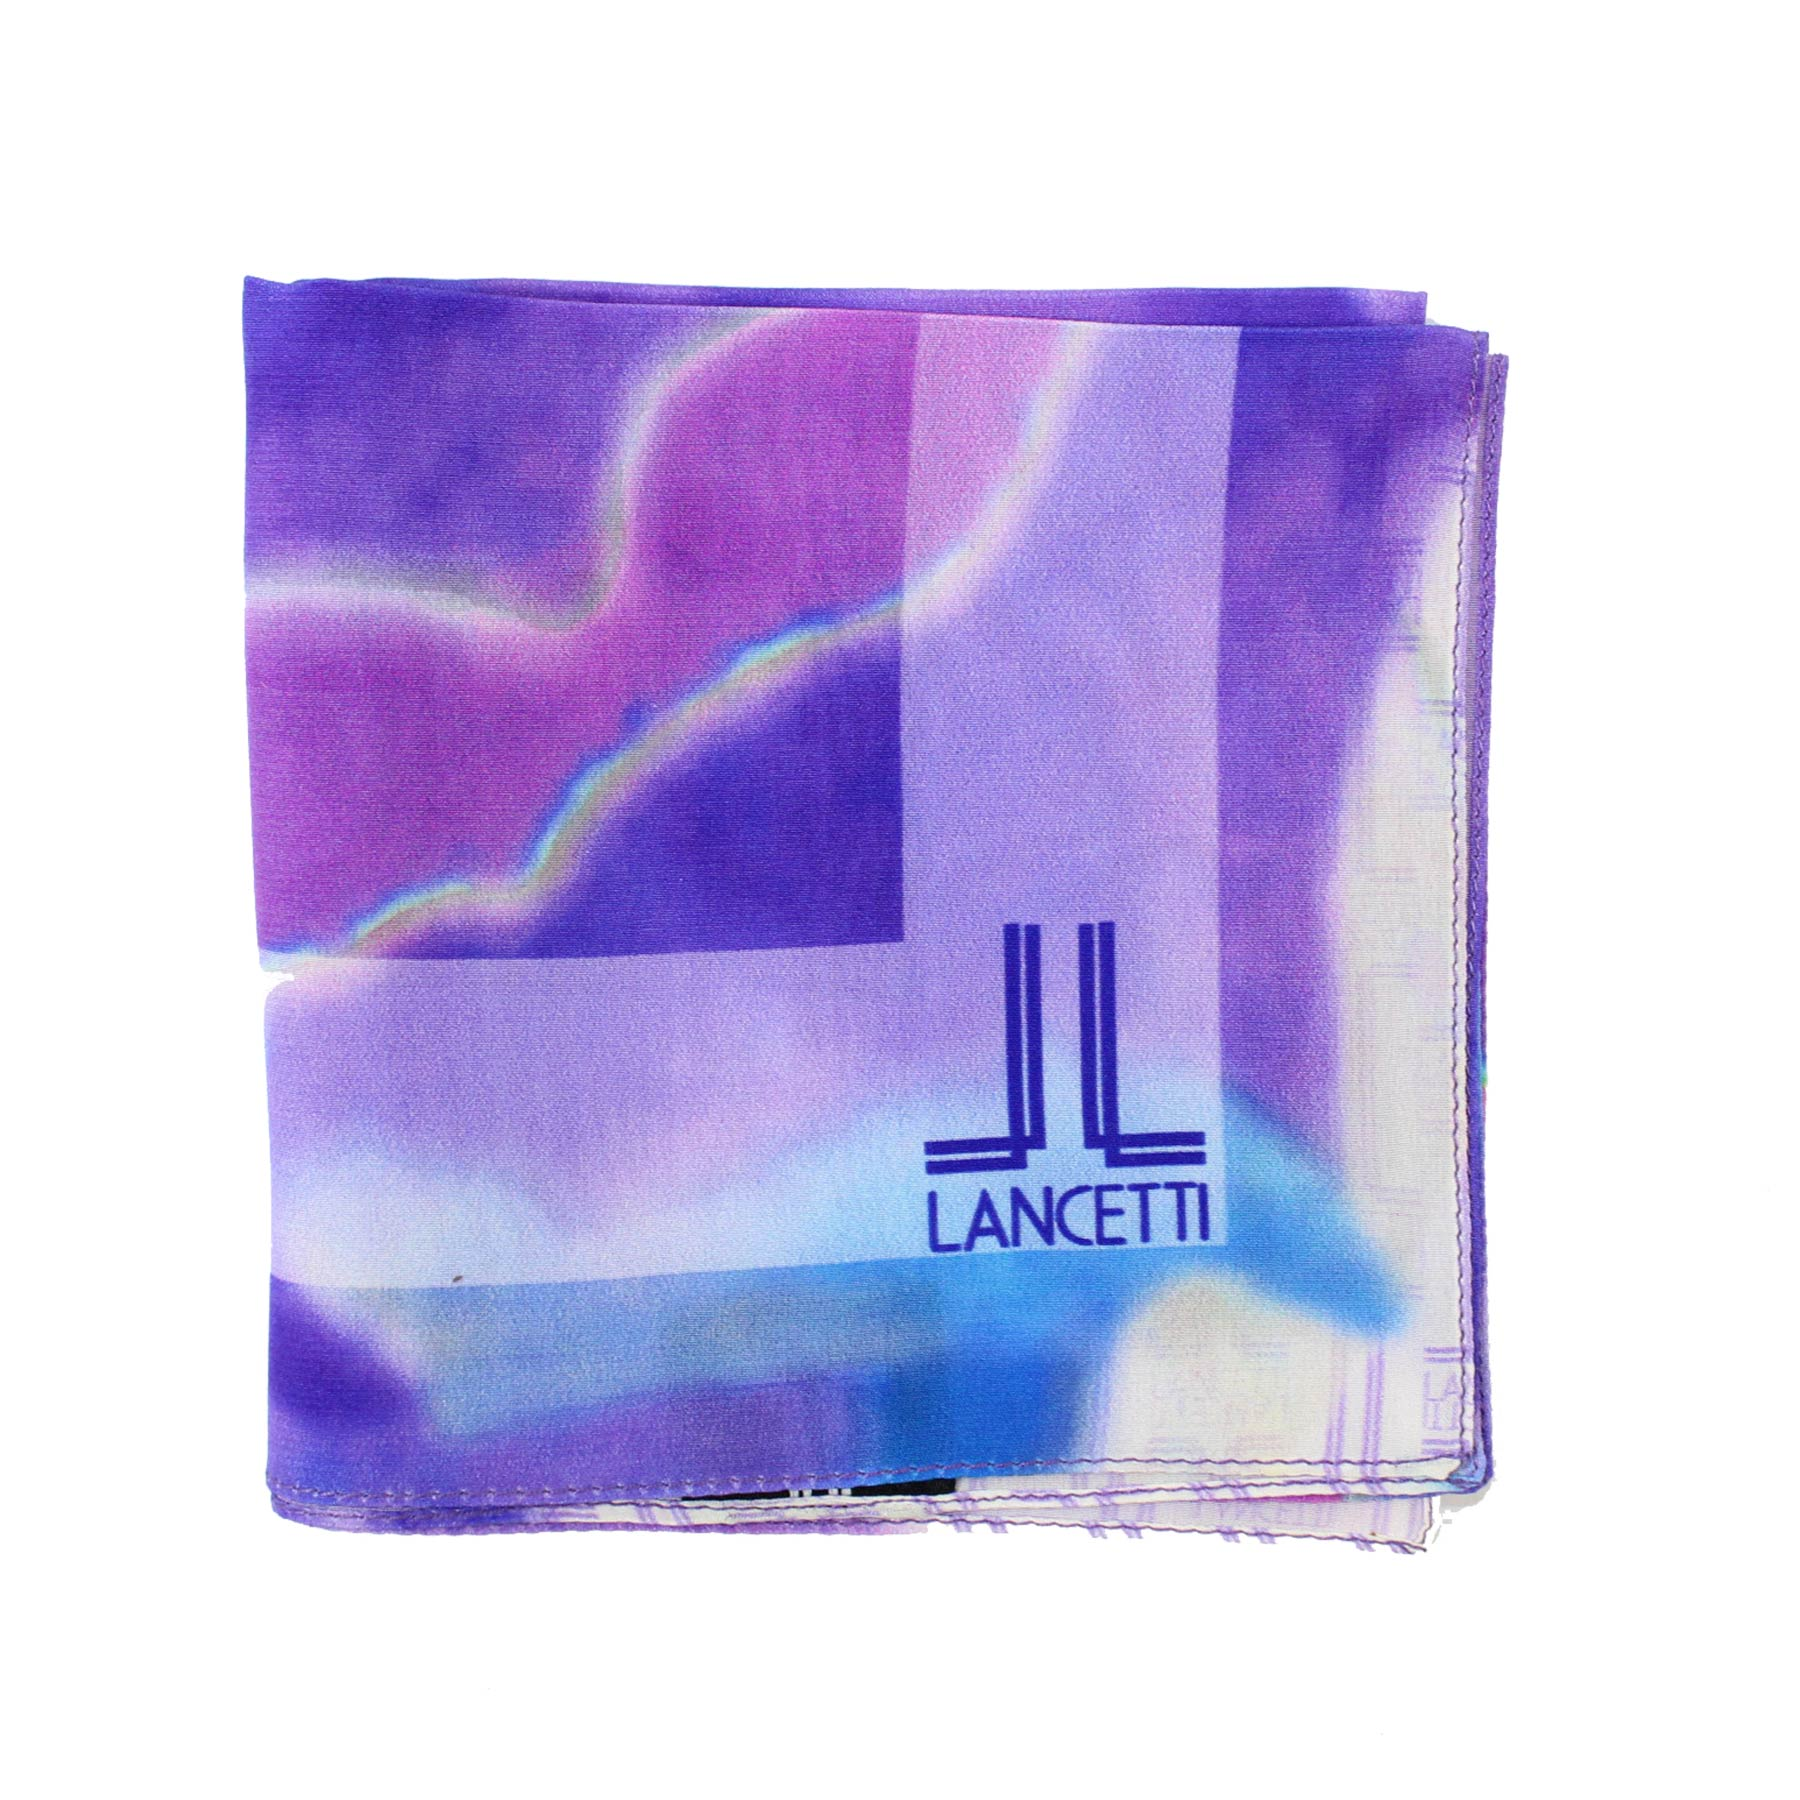 Lancetti Small Silk Scarf Purple Watercolors Made In Italy BLACK FRIDAY SALE